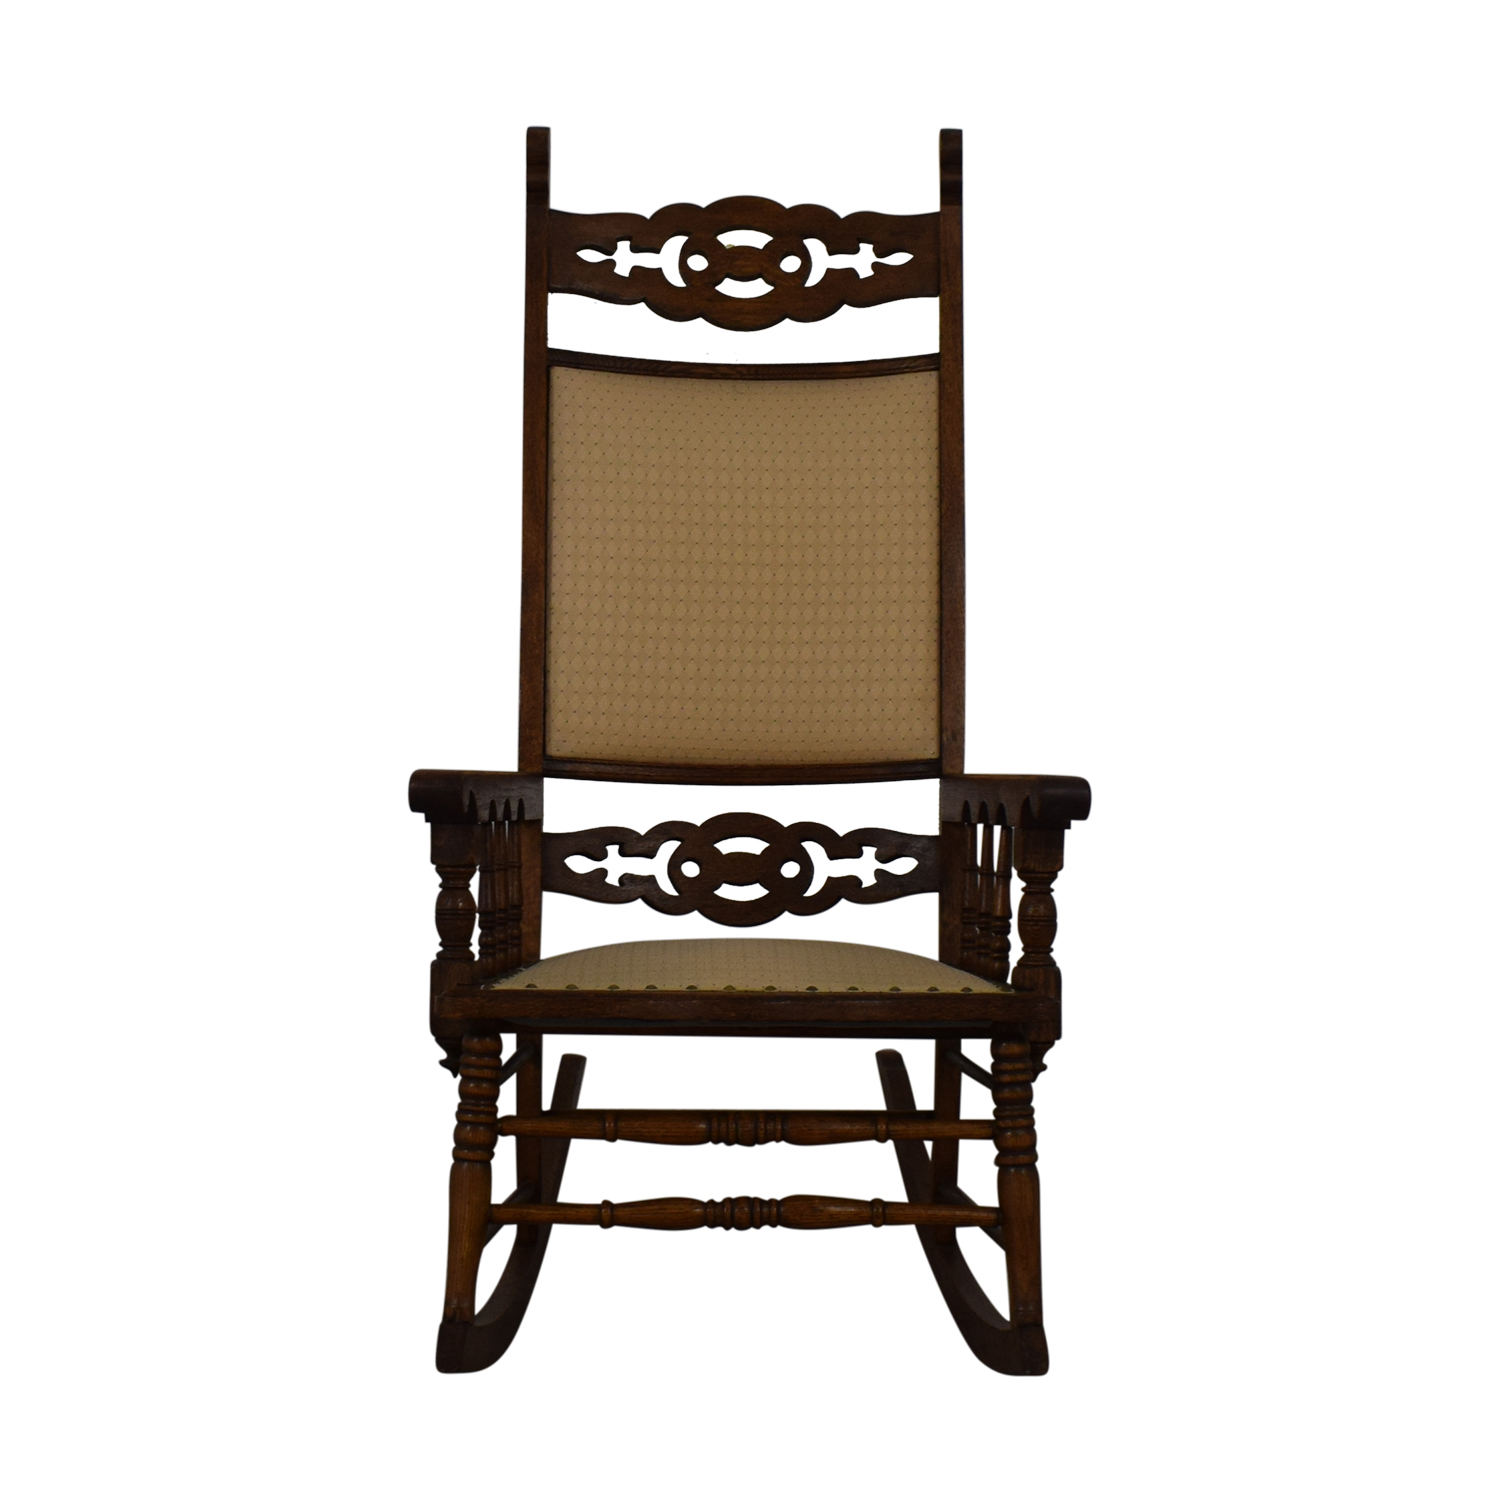 Rustic Rocking Chair discount